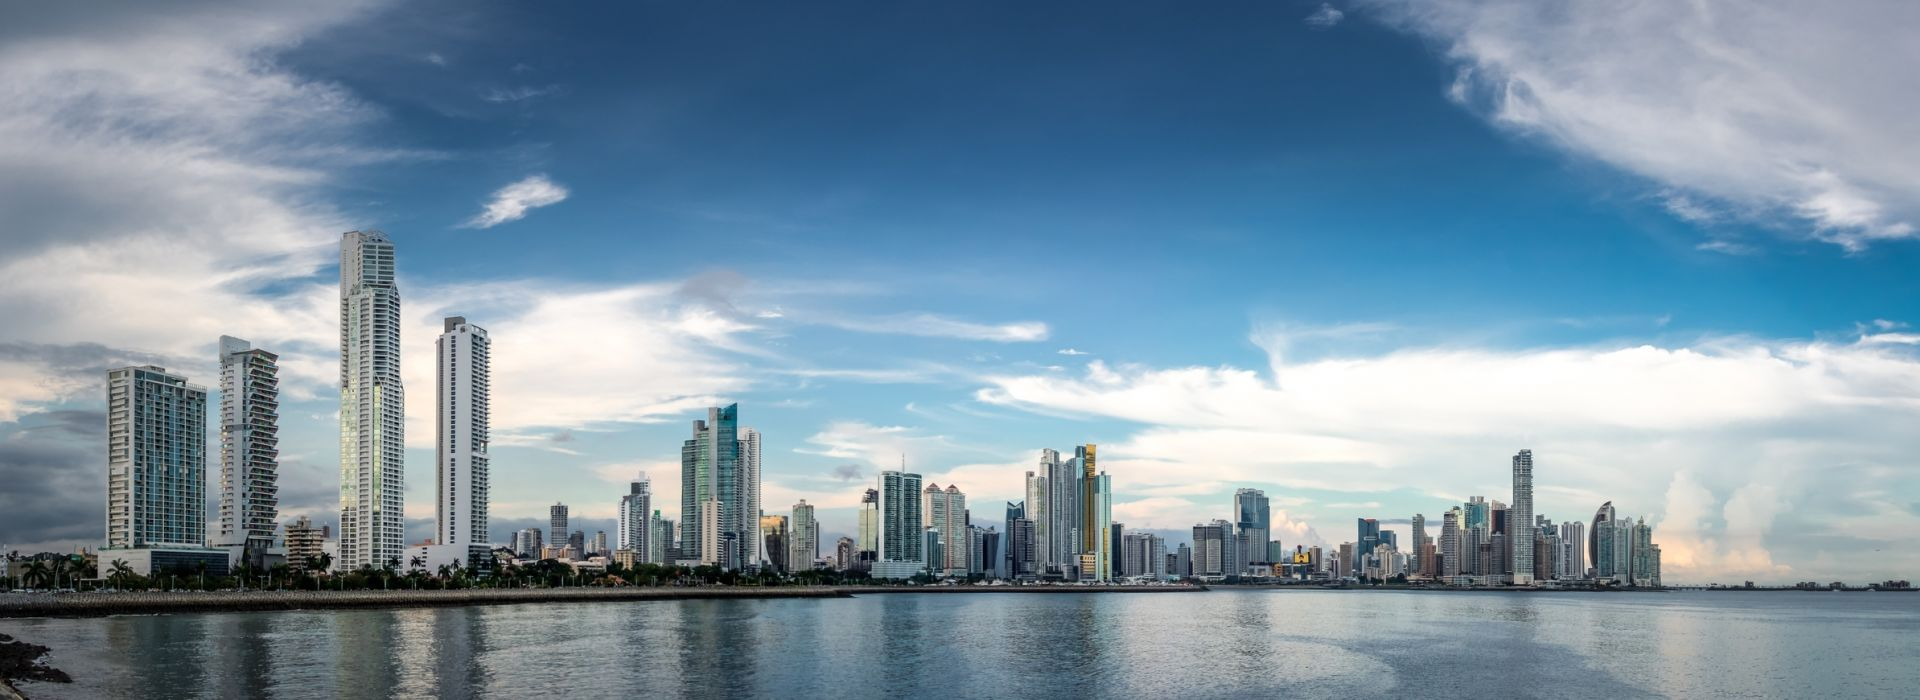 Sightseeing, attractions, culture and history Tours in Panama